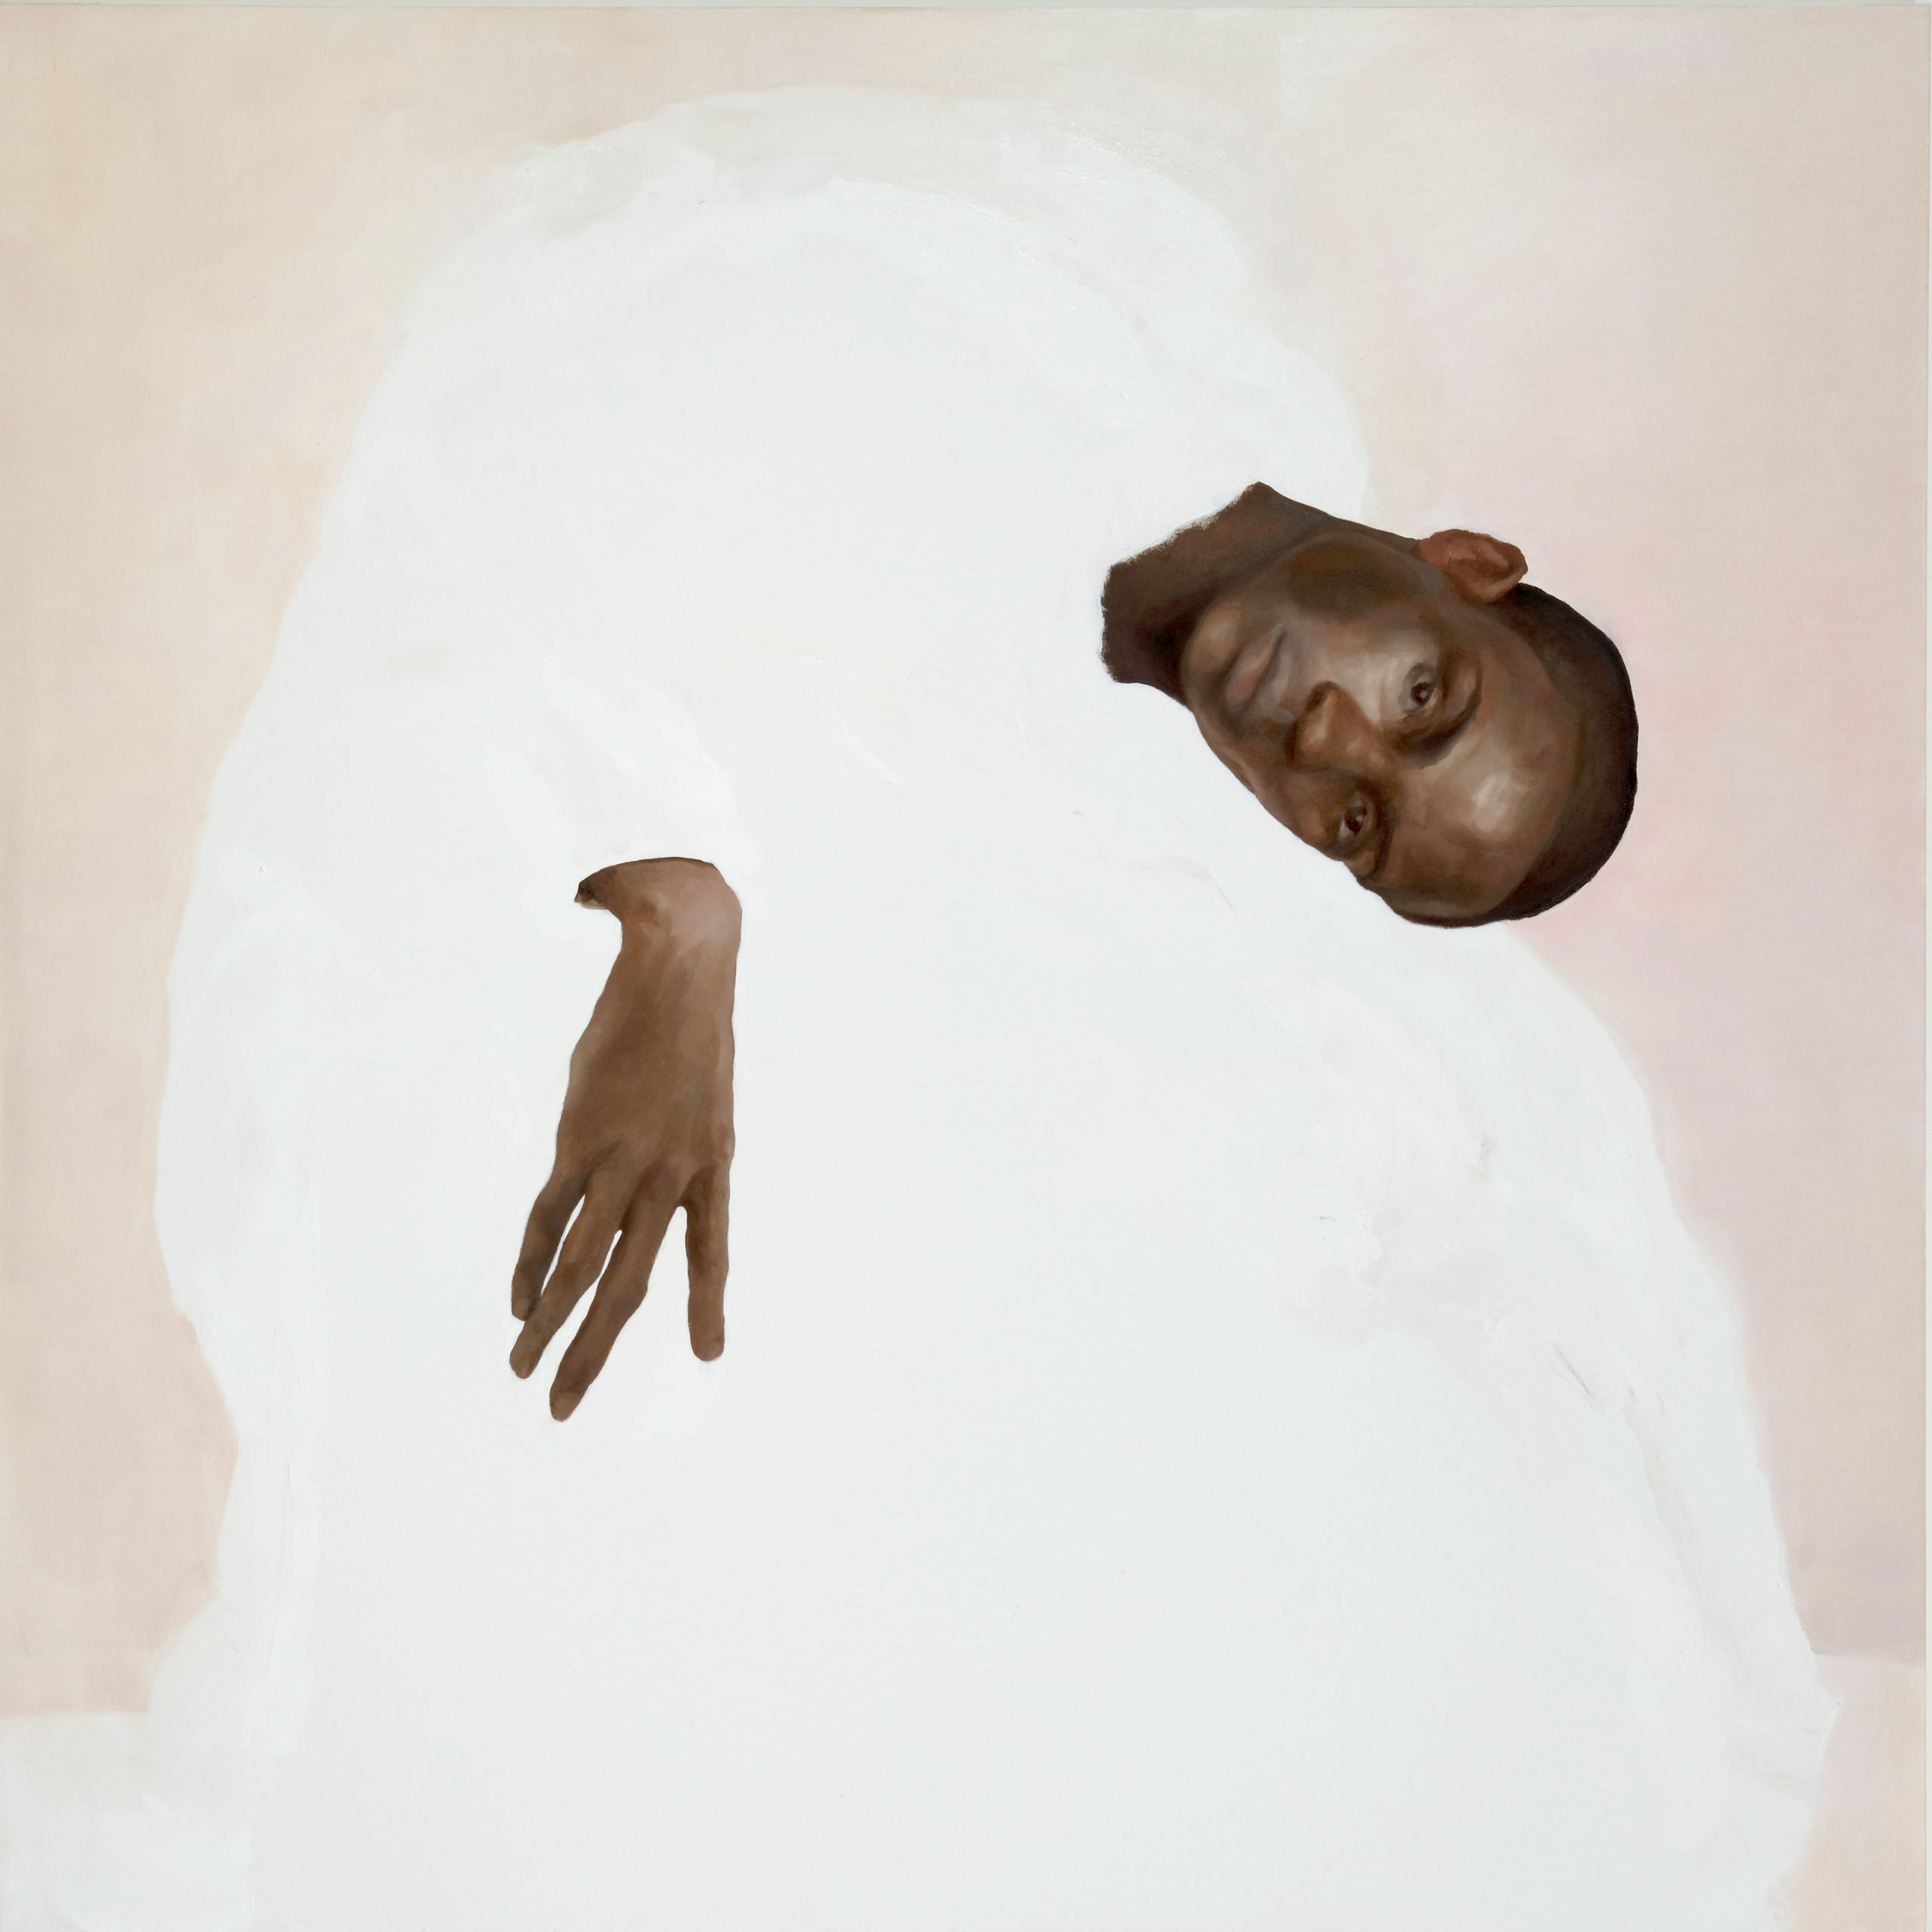 "Xavier Daniels, ""Prayers in Not a Formal Affair"", 2020, oil on canvas. Courtesy of Richard Beavers Gallery"